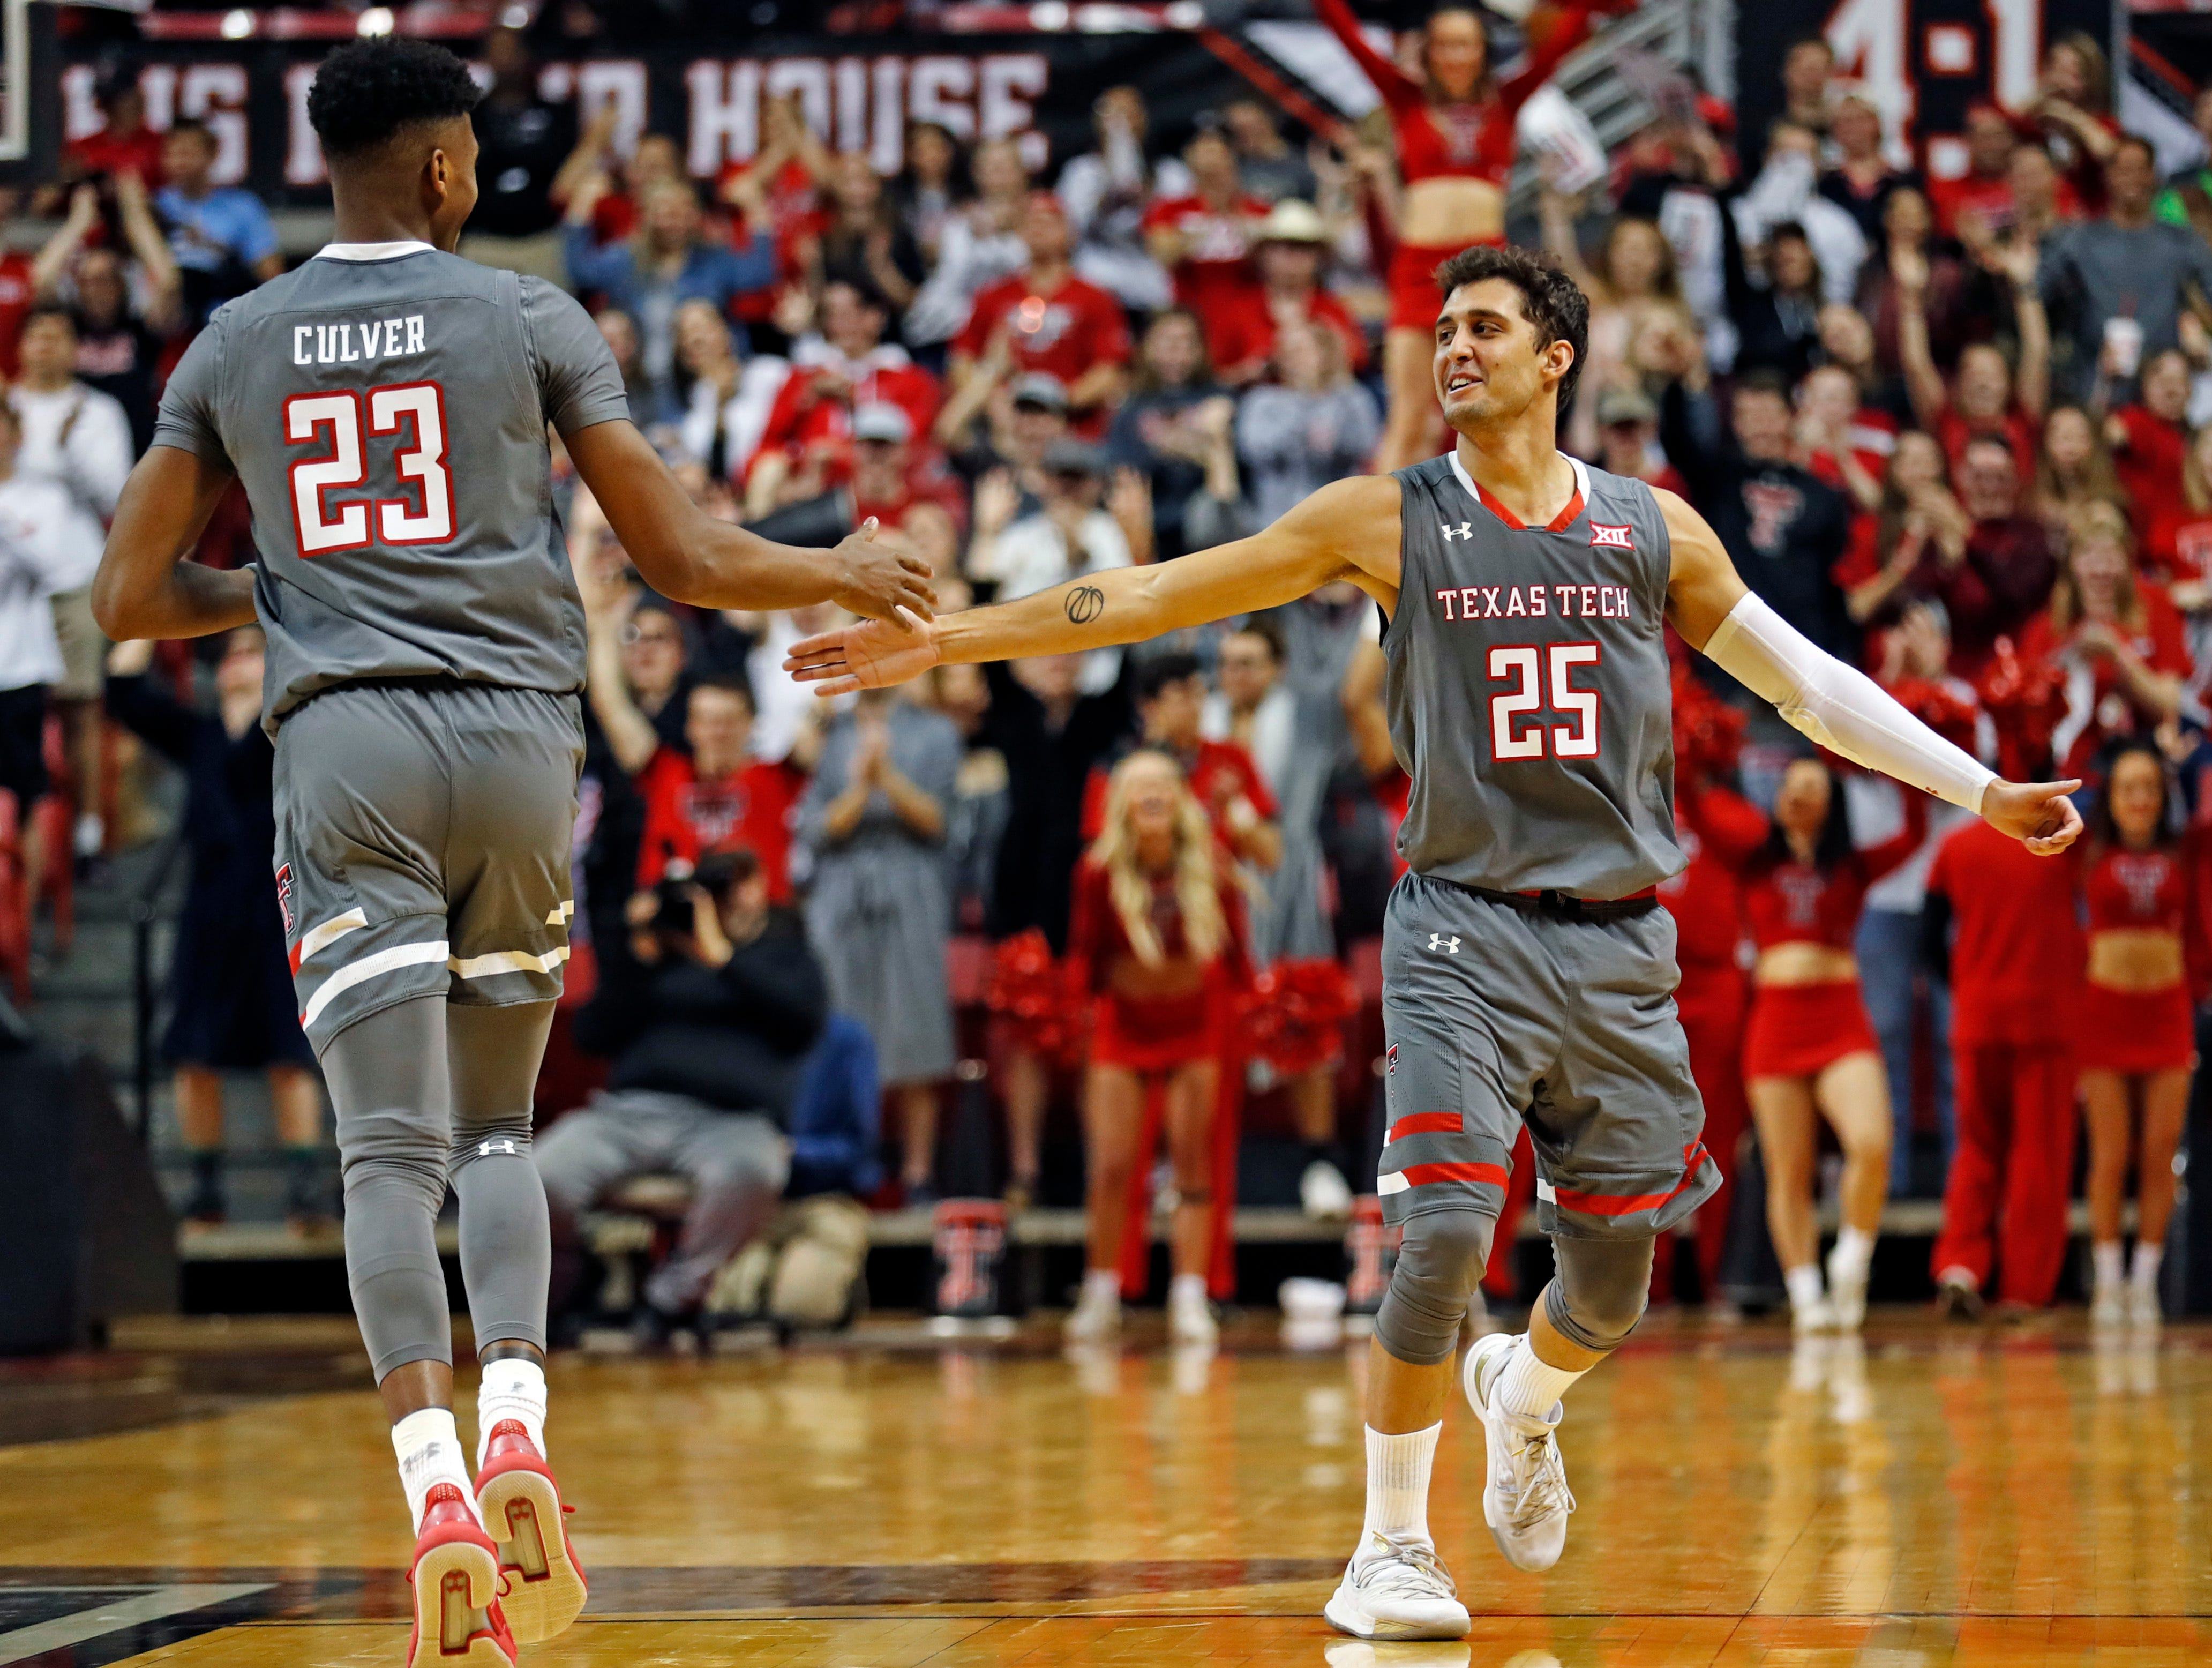 Texas Tech's Davide Moretti (25) high-fives Jarrett Culver (23) after he scored a three-point shot during the second half of an NCAA college basketball game against Baylor, Saturday, Feb. 16, 2019, in Lubbock, Texas. (AP Photo/Brad Tollefson)